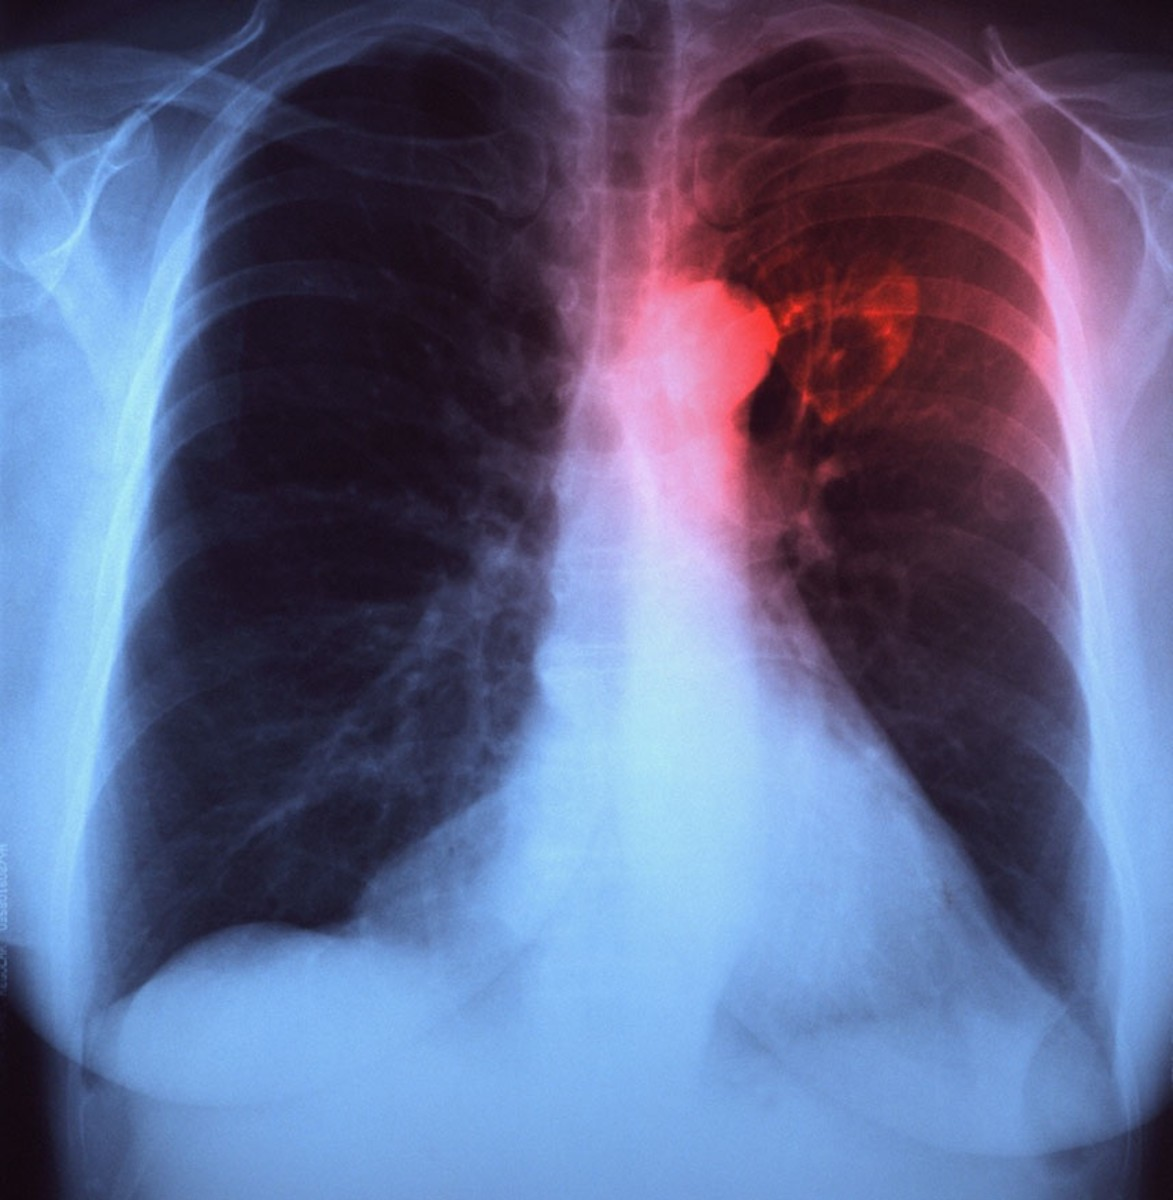 When the space between two layers of pleura starts to fill with fluid in a case of pleural effusion, it can ease the chest pain, but instead creates a shortness of breath, since the lungs need room to expand during breathing.